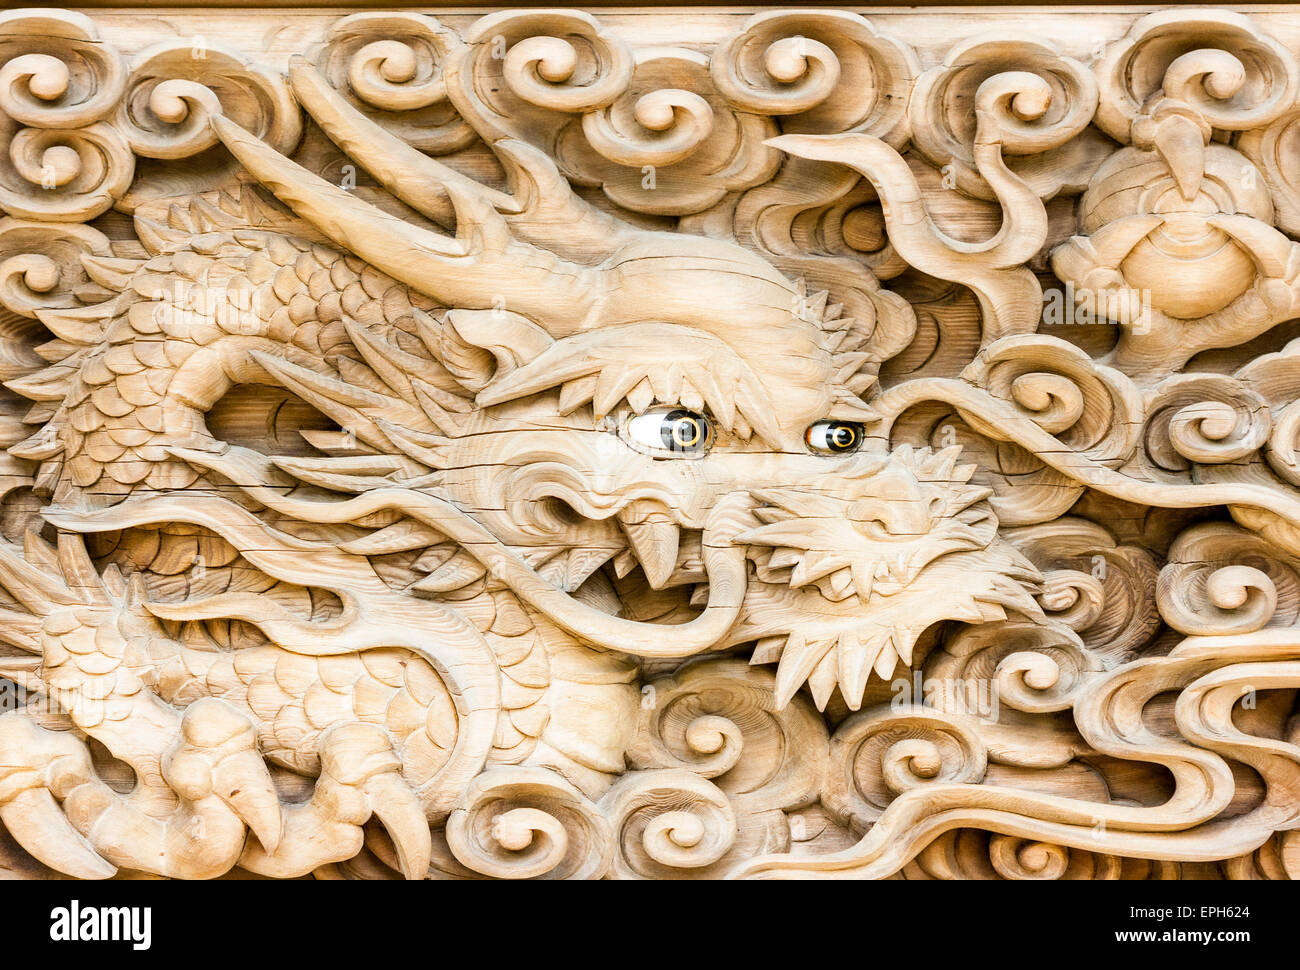 Japan, Kobe, Suma-dera temple. Buddhist Kondo Hall, roof detail. Wooden carved face of dragon with inlaid eyes. - Stock Image